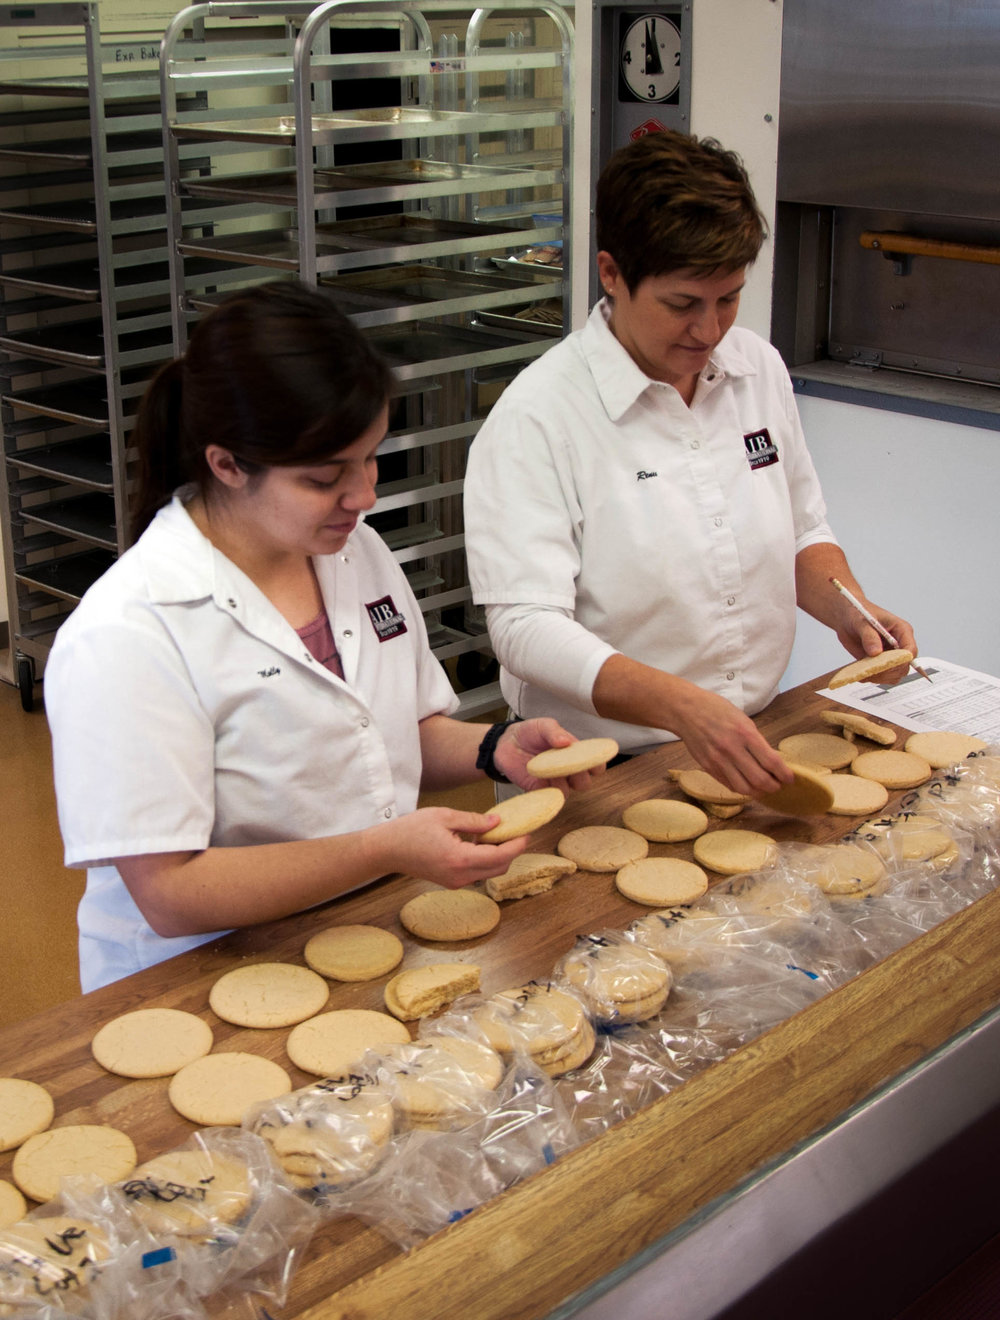 Researchers use a subjective evaluation of cookies to compare flour quality.